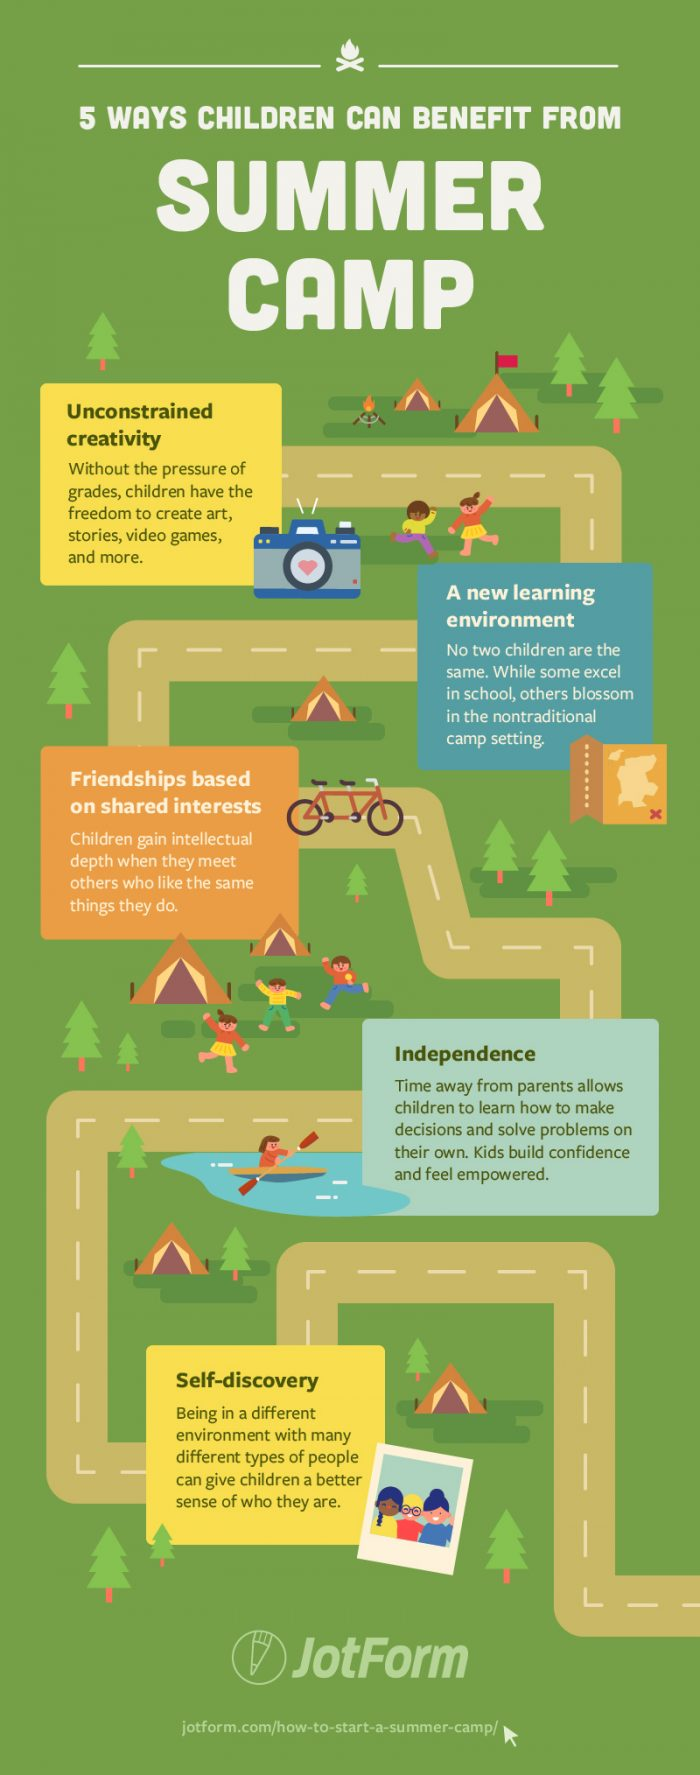 5 summer camp benefits for kids